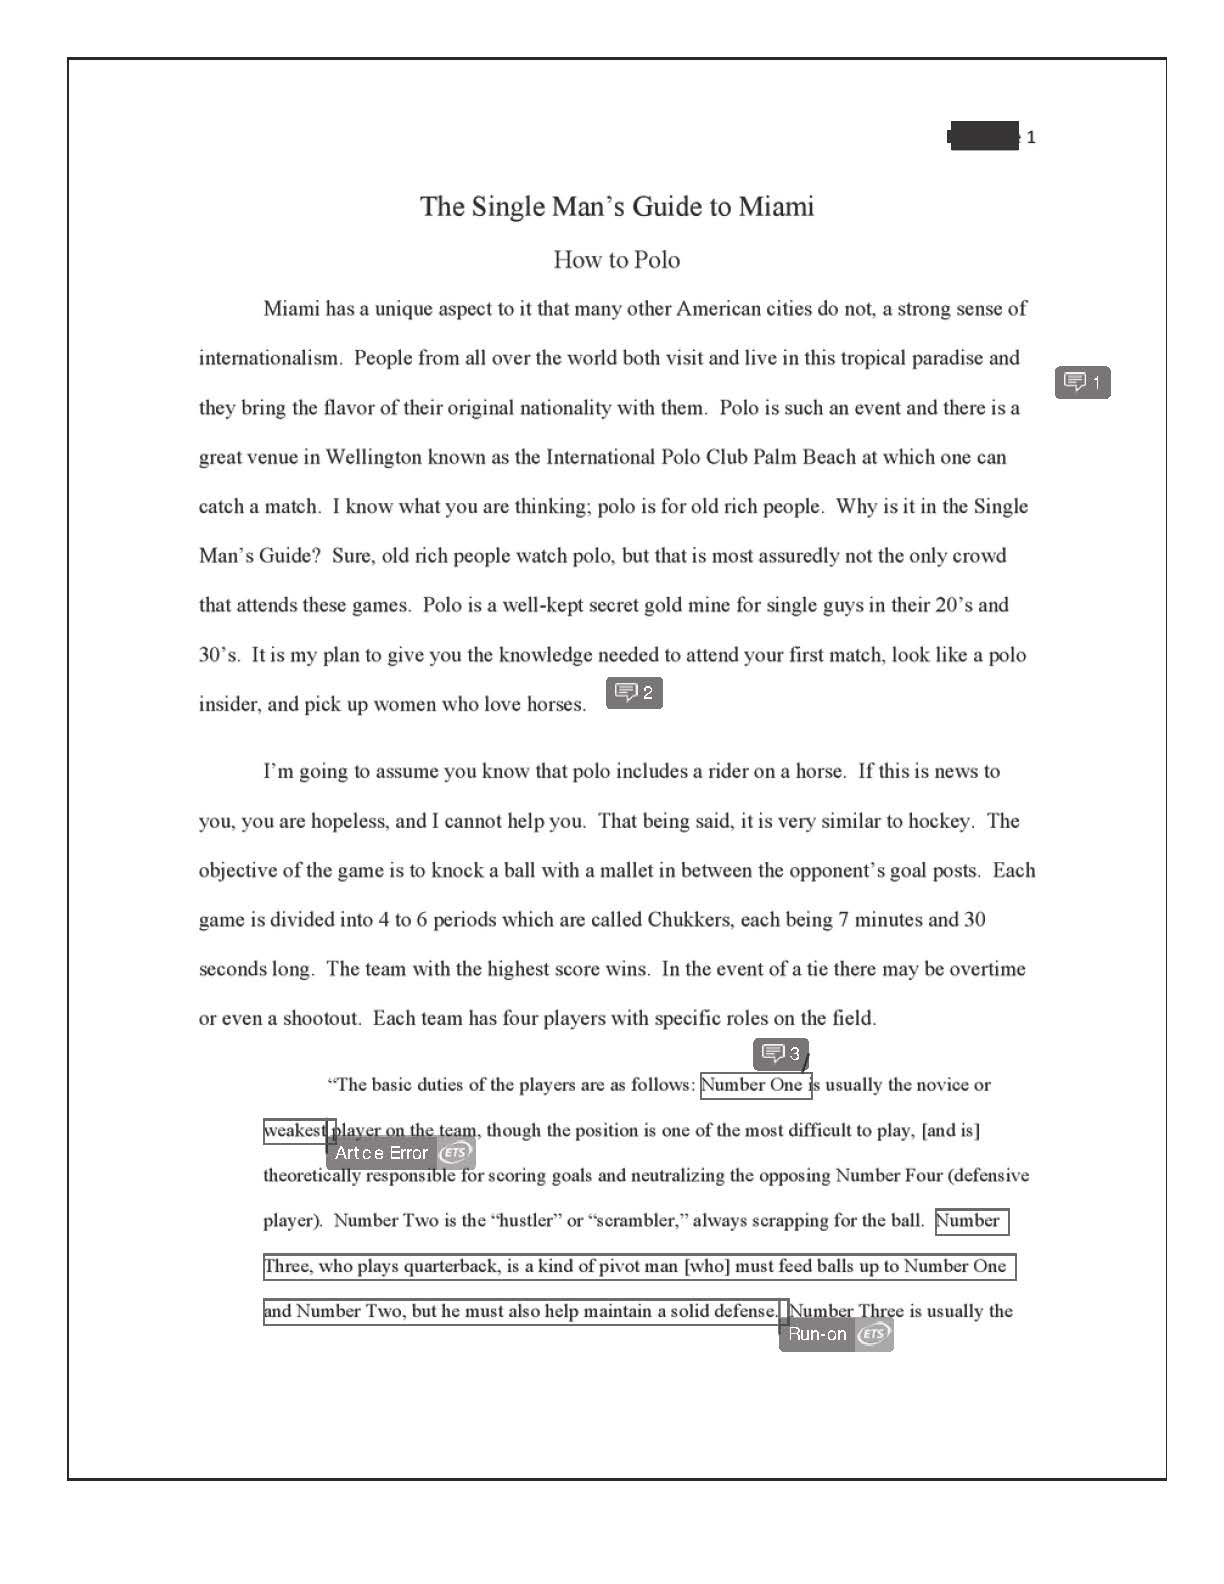 007 Informative Essay Kinds Of Writing Types Essays The Center In Hindi Final How To Polo Redacted P Pdf Task Slideshare Ppt Withs Wikipedia Dreaded Outline Template Topics For 5th Grade Rubric Fsa Full